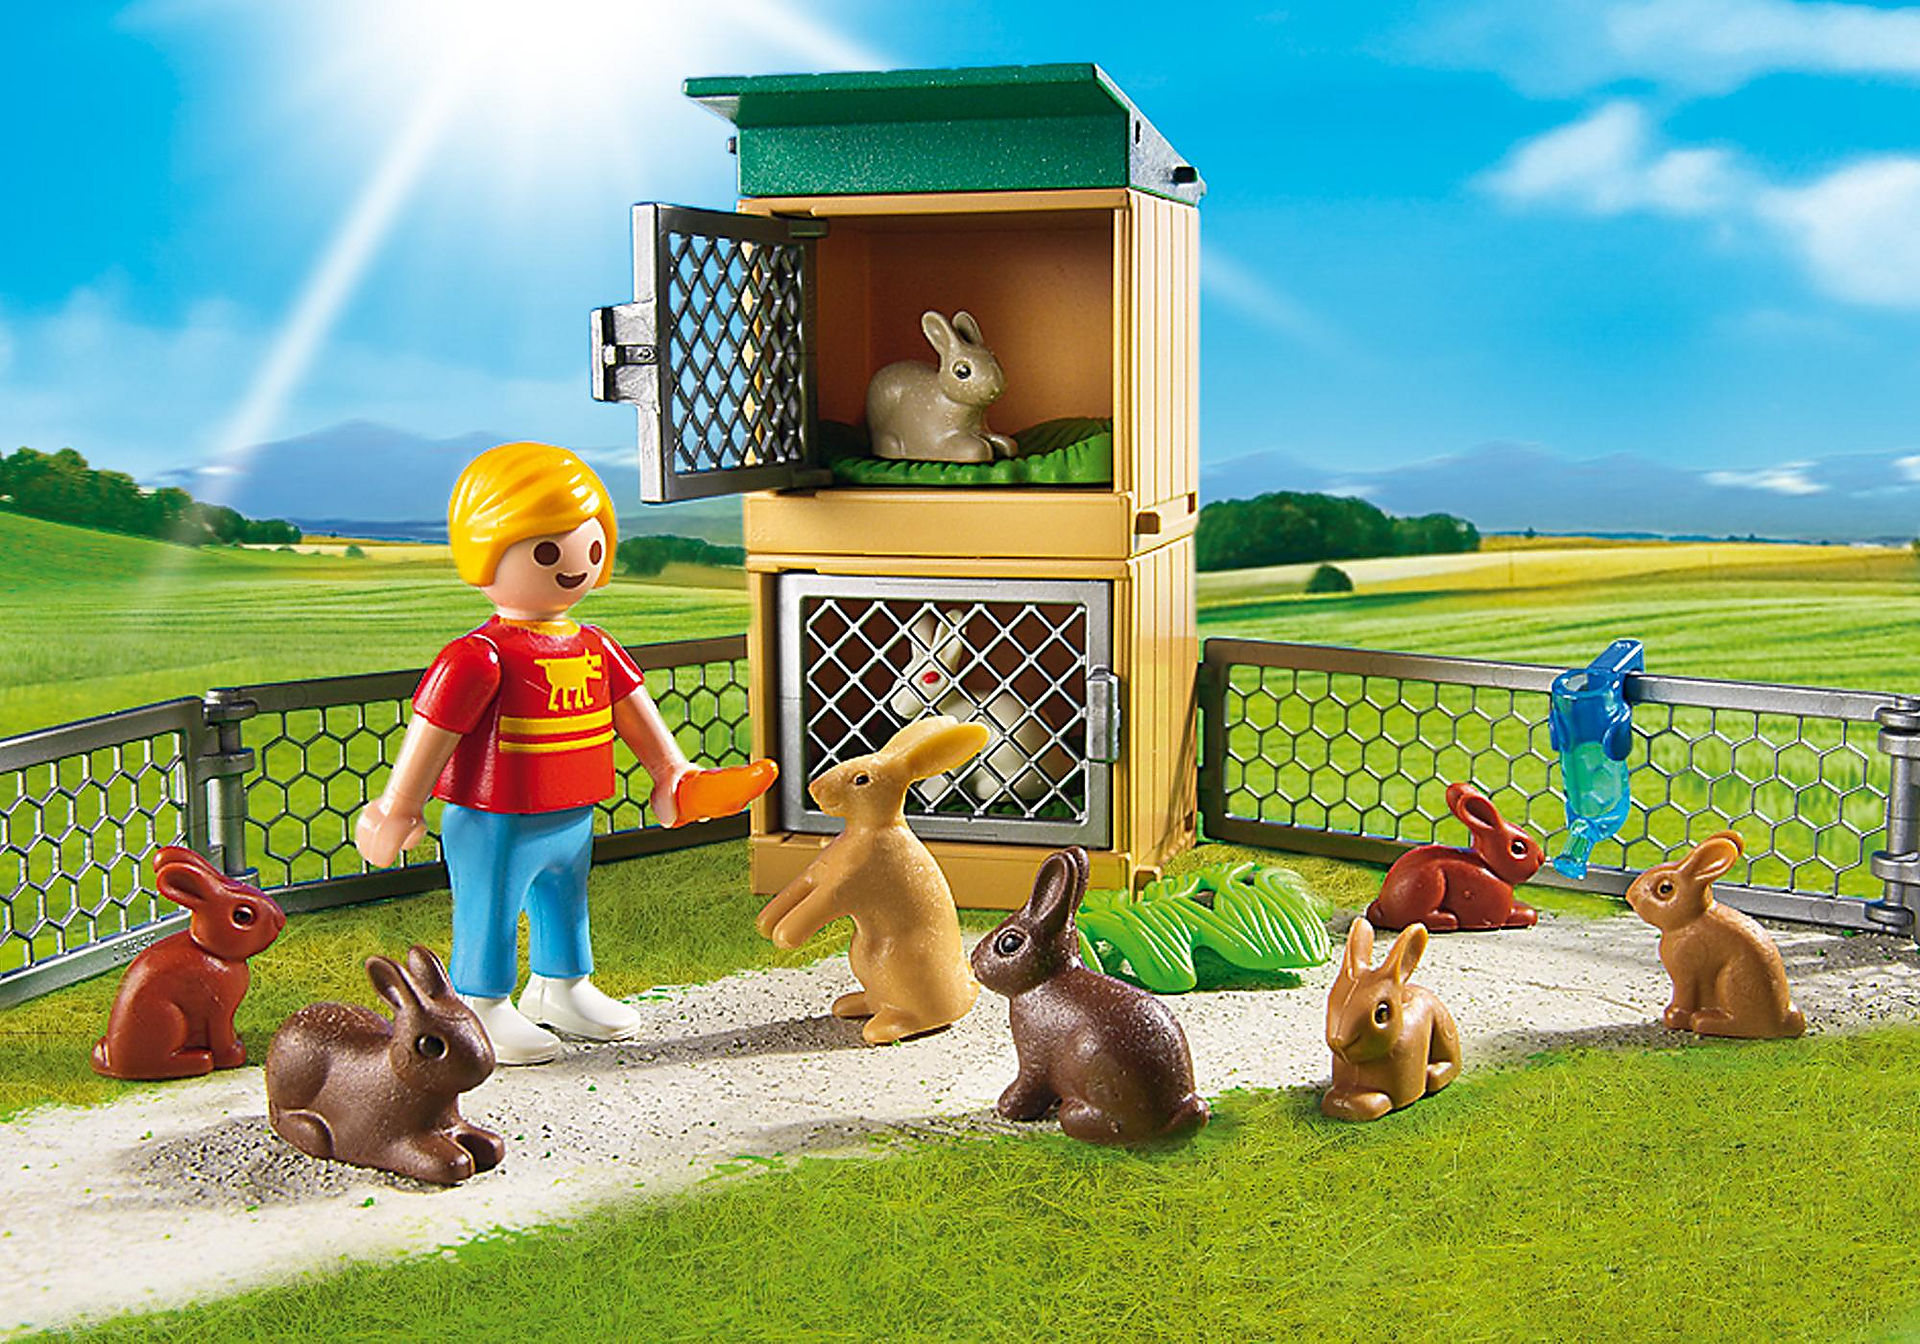 http://media.playmobil.com/i/playmobil/6140_product_extra1/Rabbit Pen with Hutch